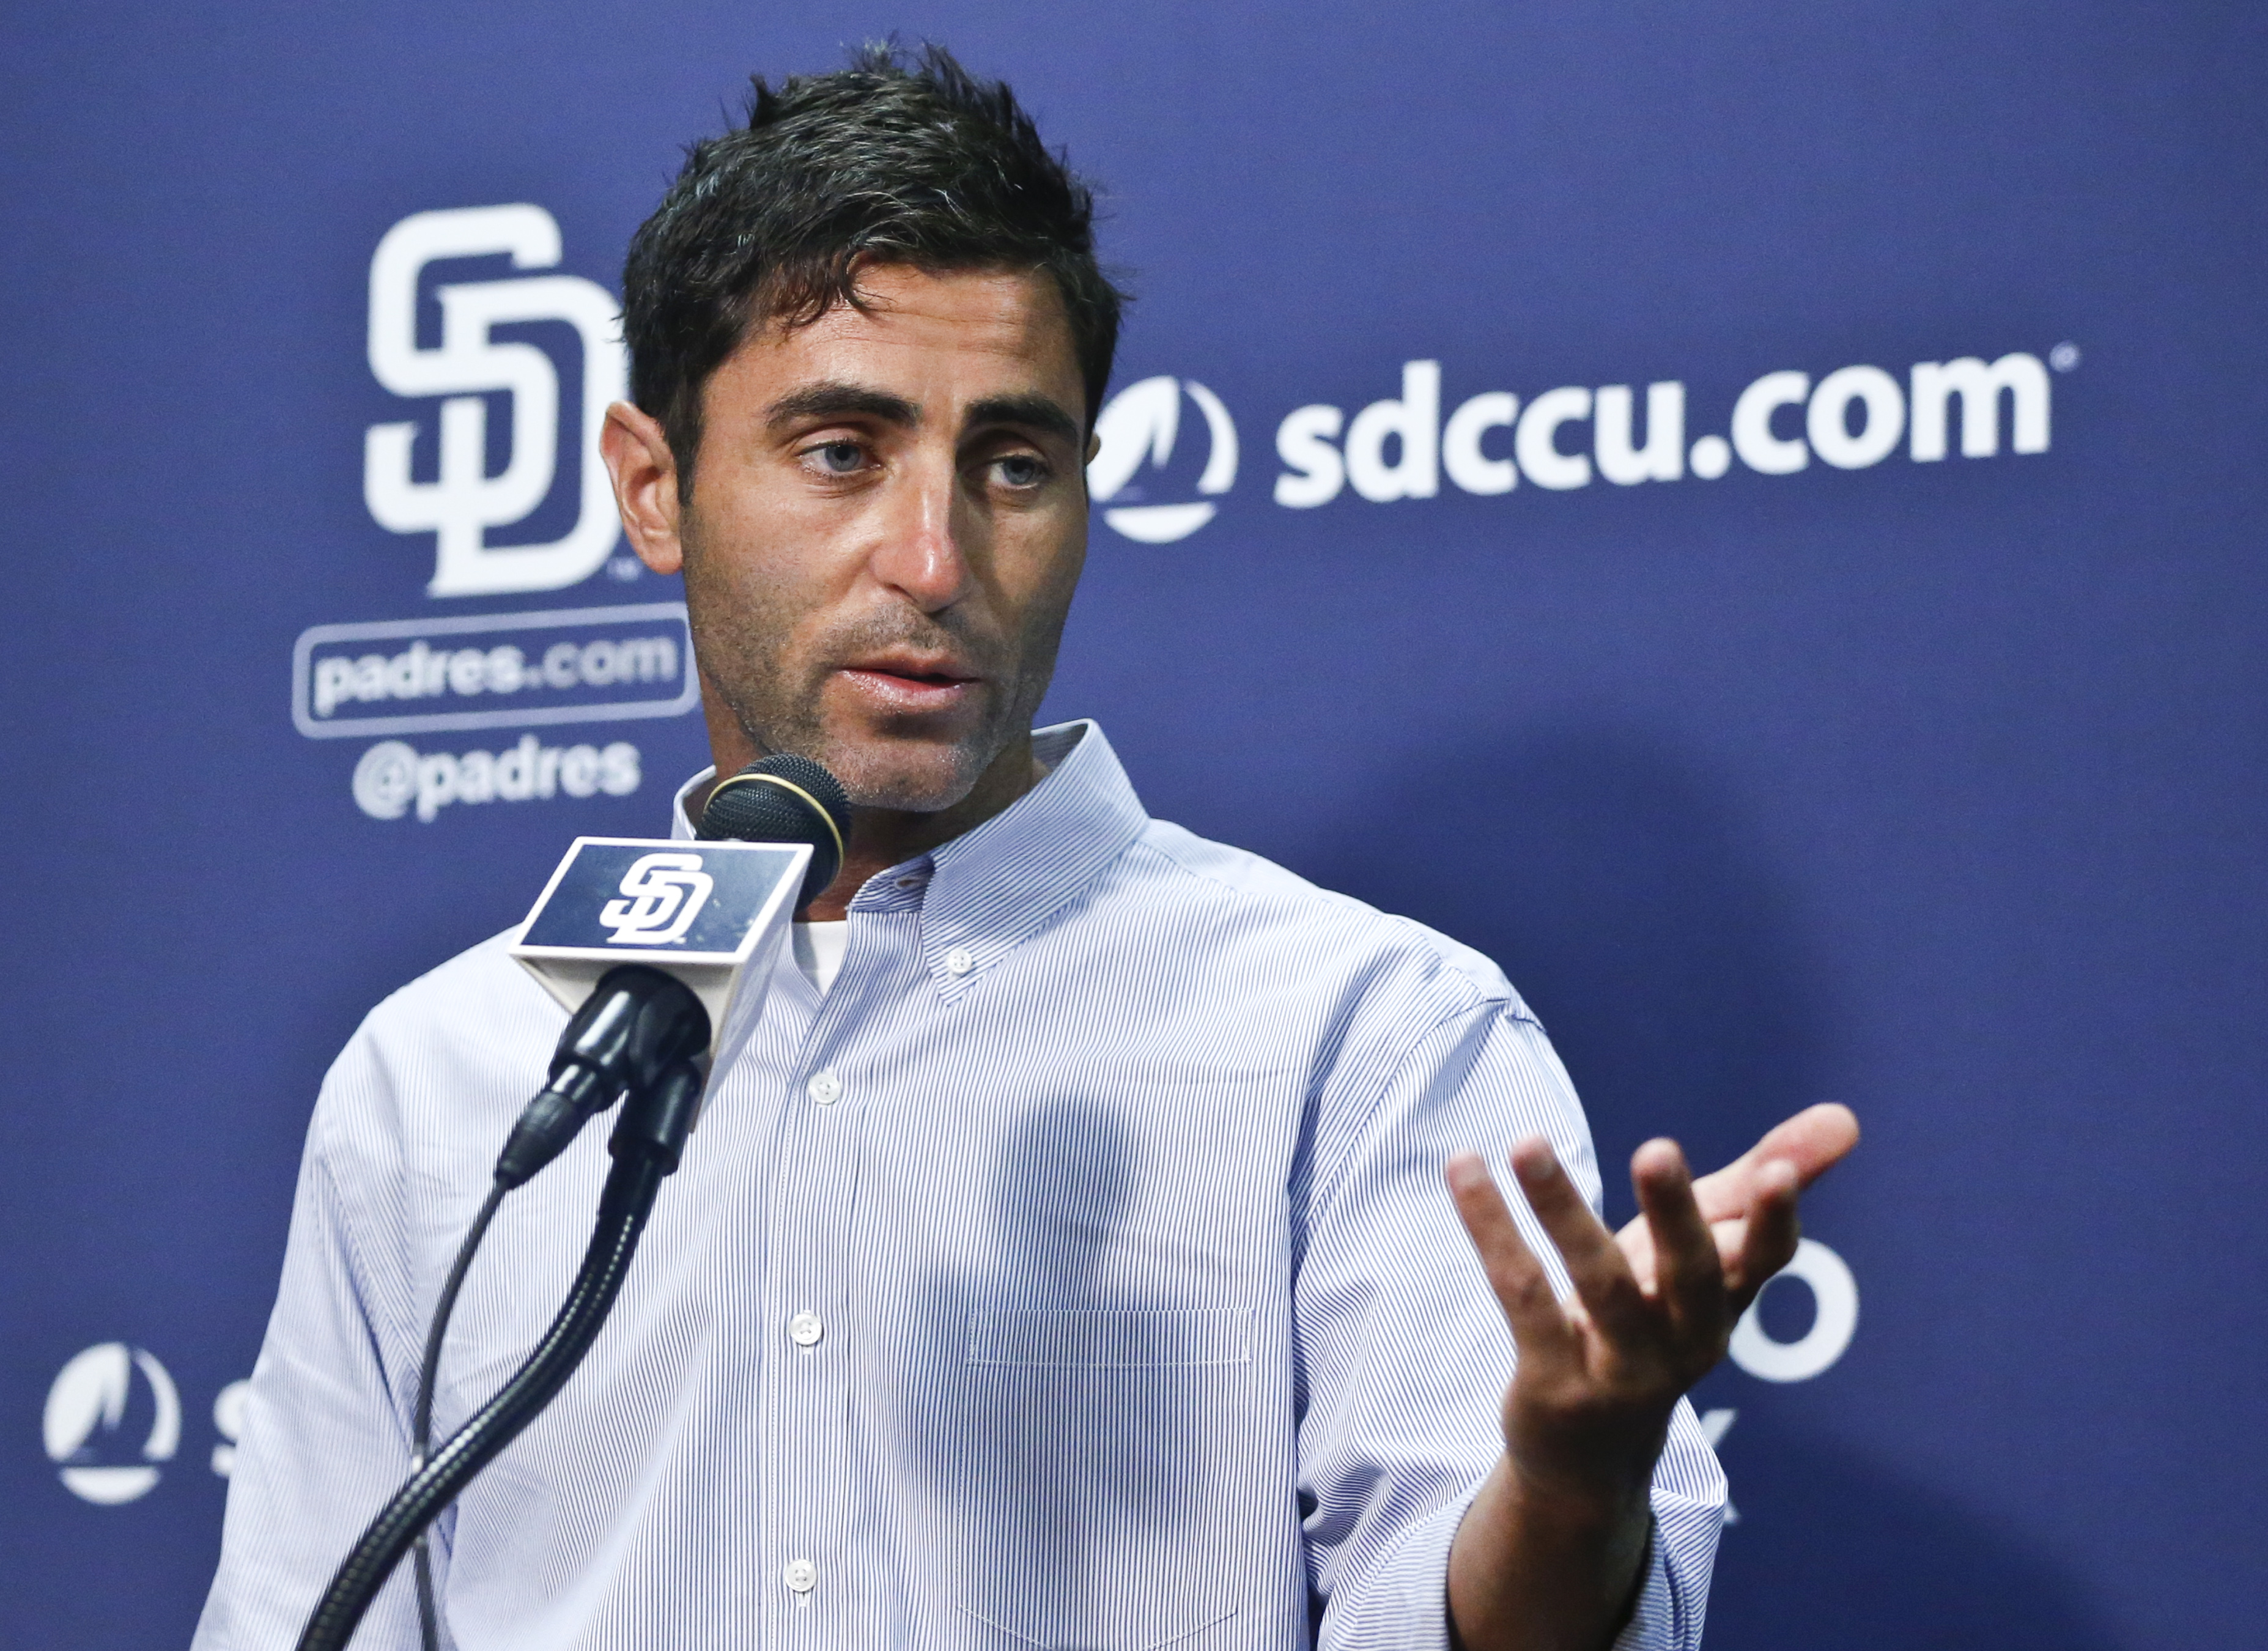 San Diego Padres general manager A.J. Preller answers questions about the trading of all-star pitcher Drew Pomeranz to the Boston Red Sox prior to a baseball game against the San Francisco Giants Friday, July 15, 2016, in San Diego. (AP Photo/Lenny Ignelz